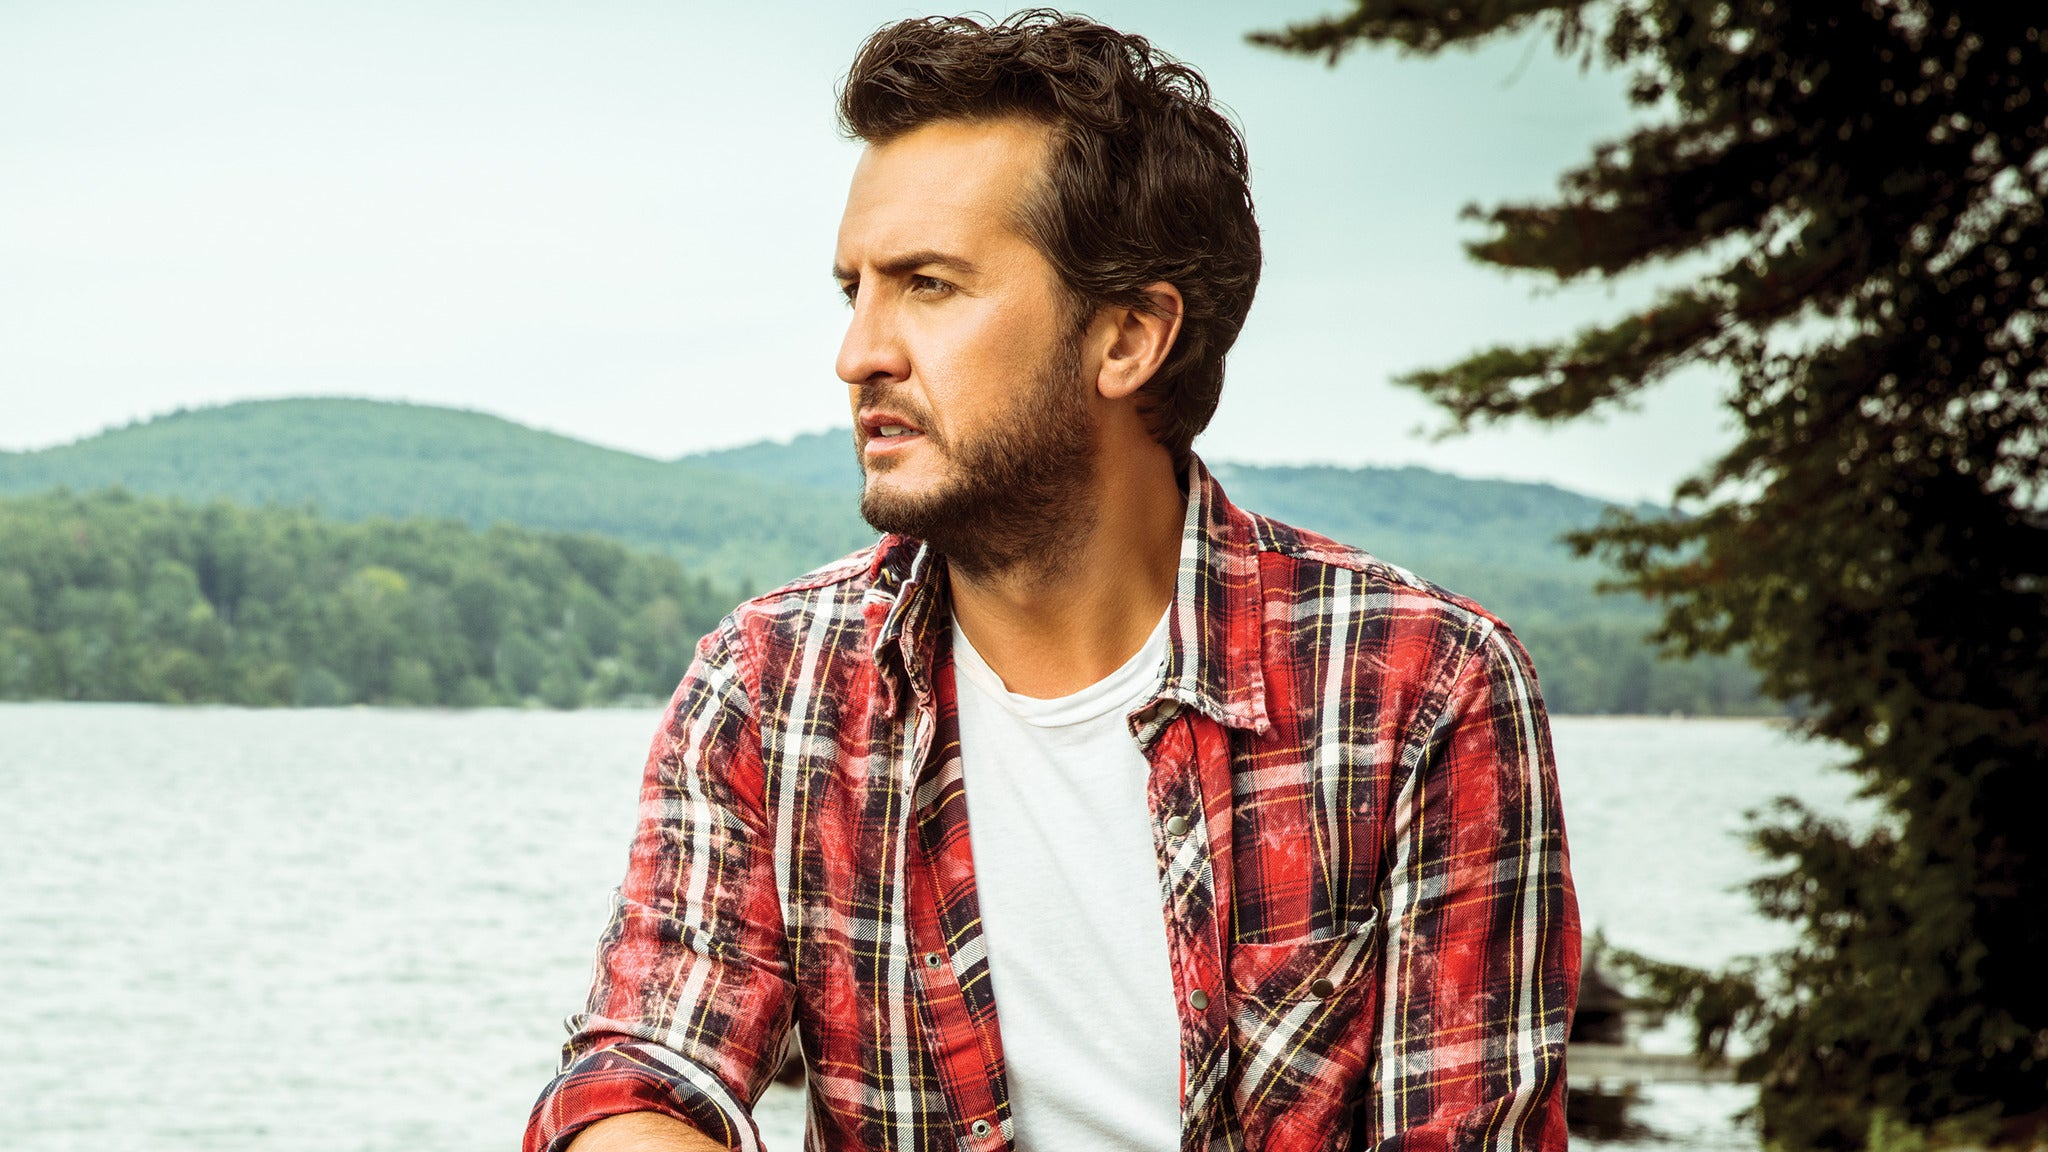 Luke Bryan at Alumni Stadium - DE